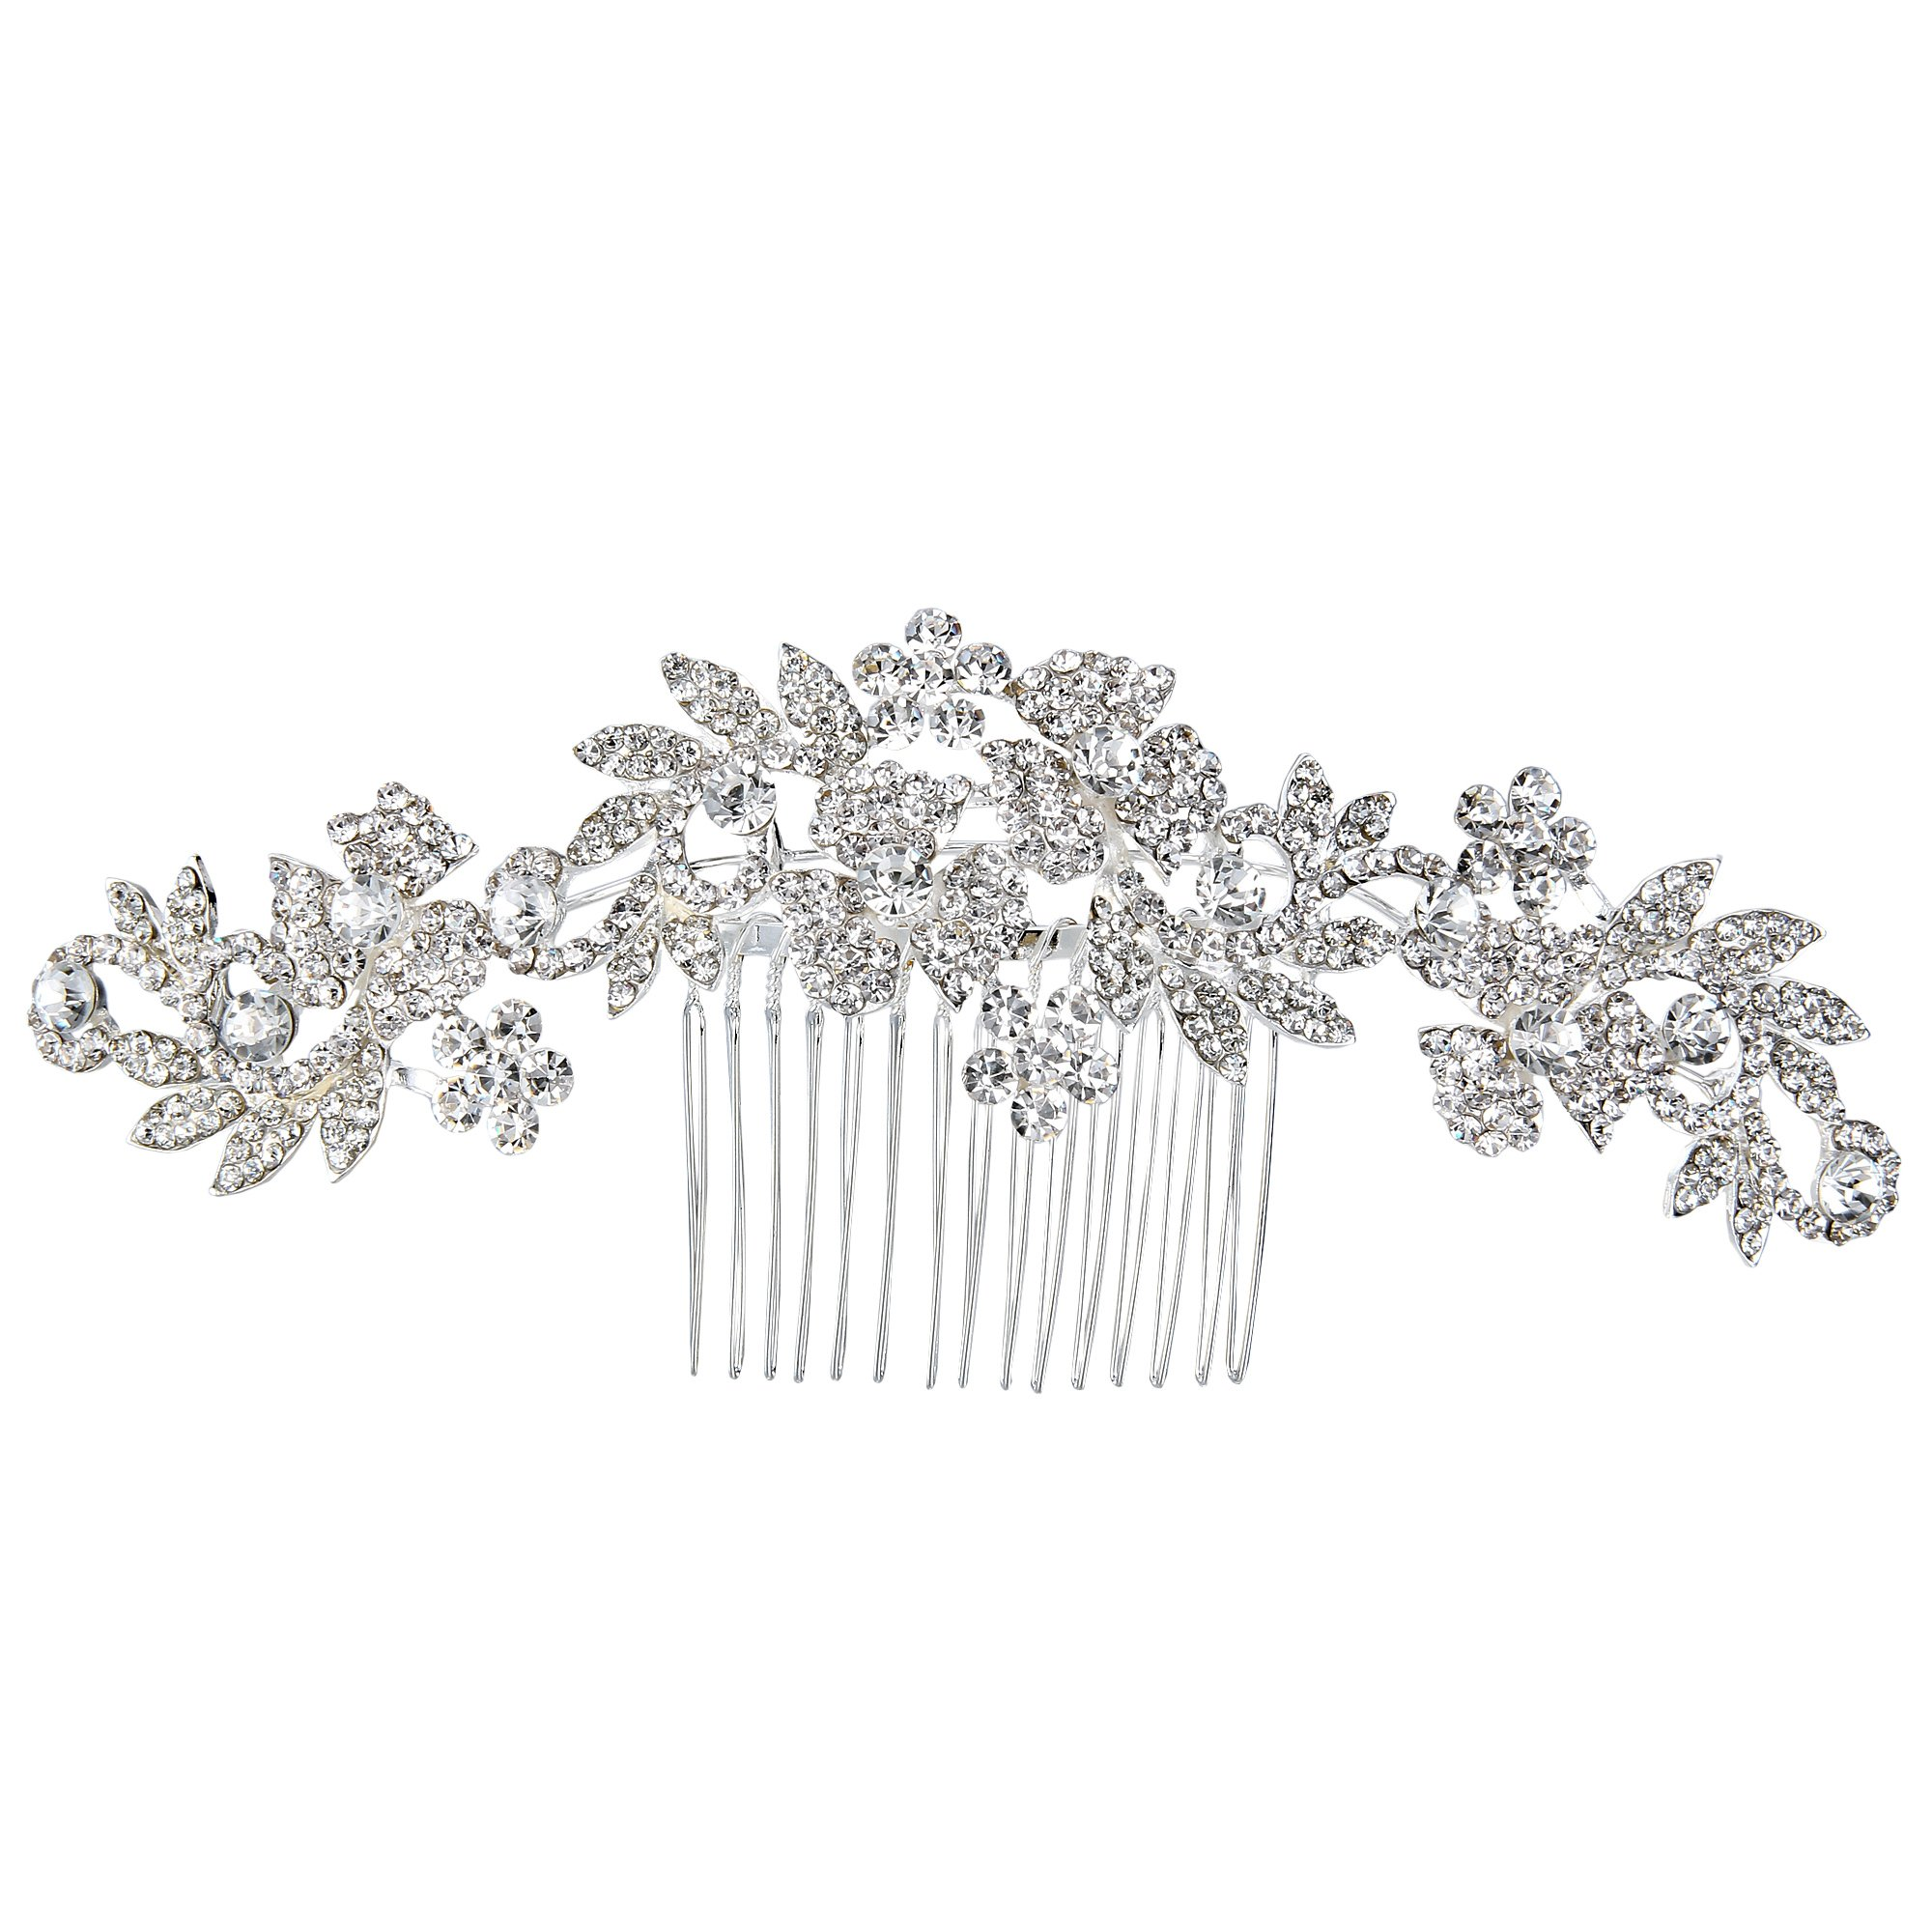 BriLove Wedding Hair Accessories Wedding Hair Comb Bohemian Boho Crystal Cluster Flower Vine Leaf Bling Comb for Bride and Women Clear Silver-Tone